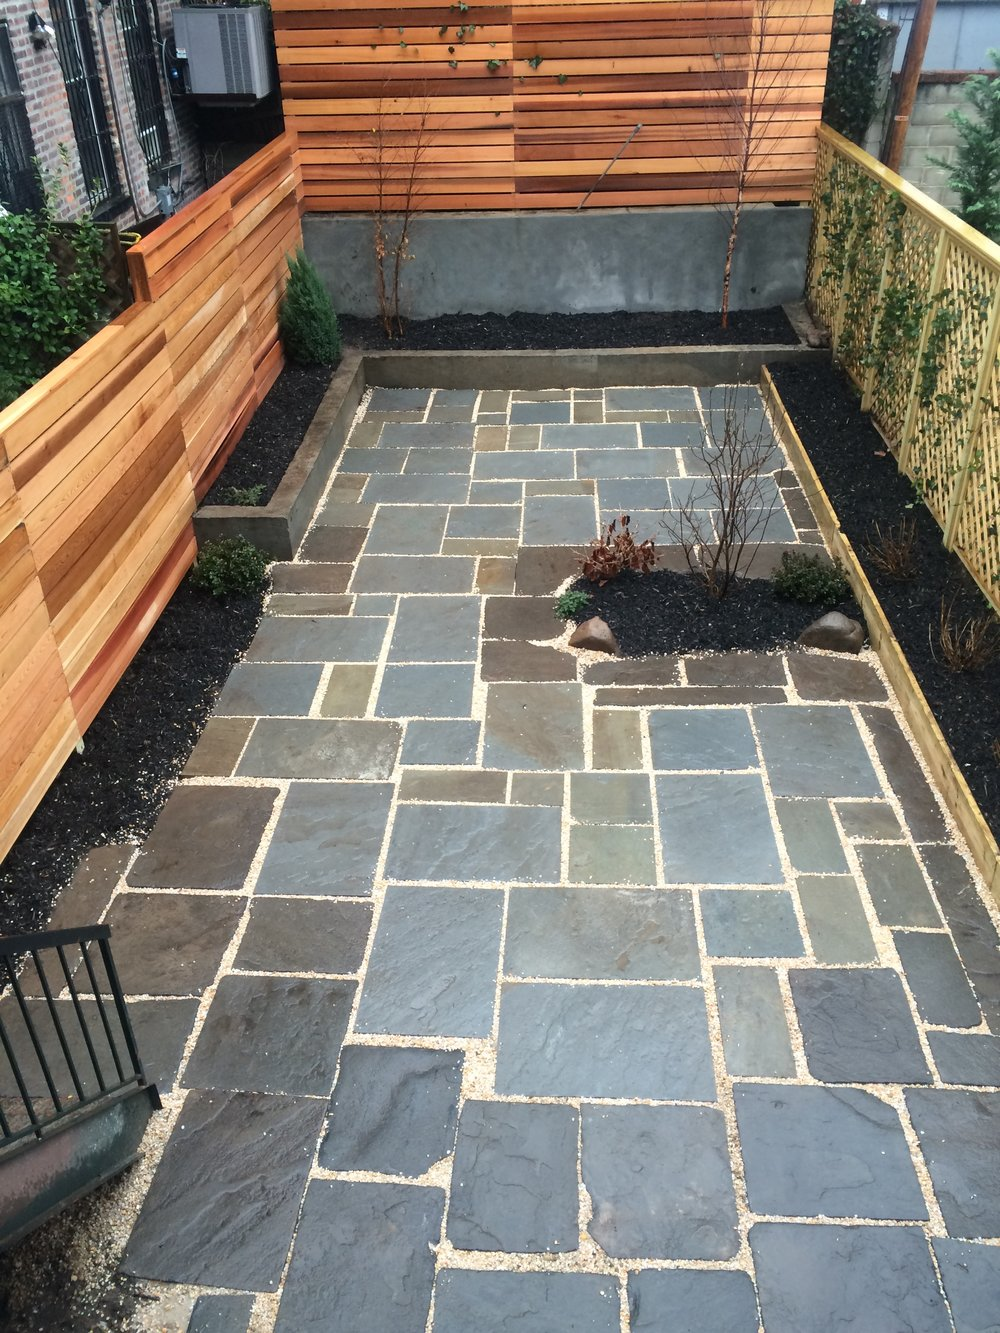 Mixing original bluestone seamlessly with modern quarried bluestone